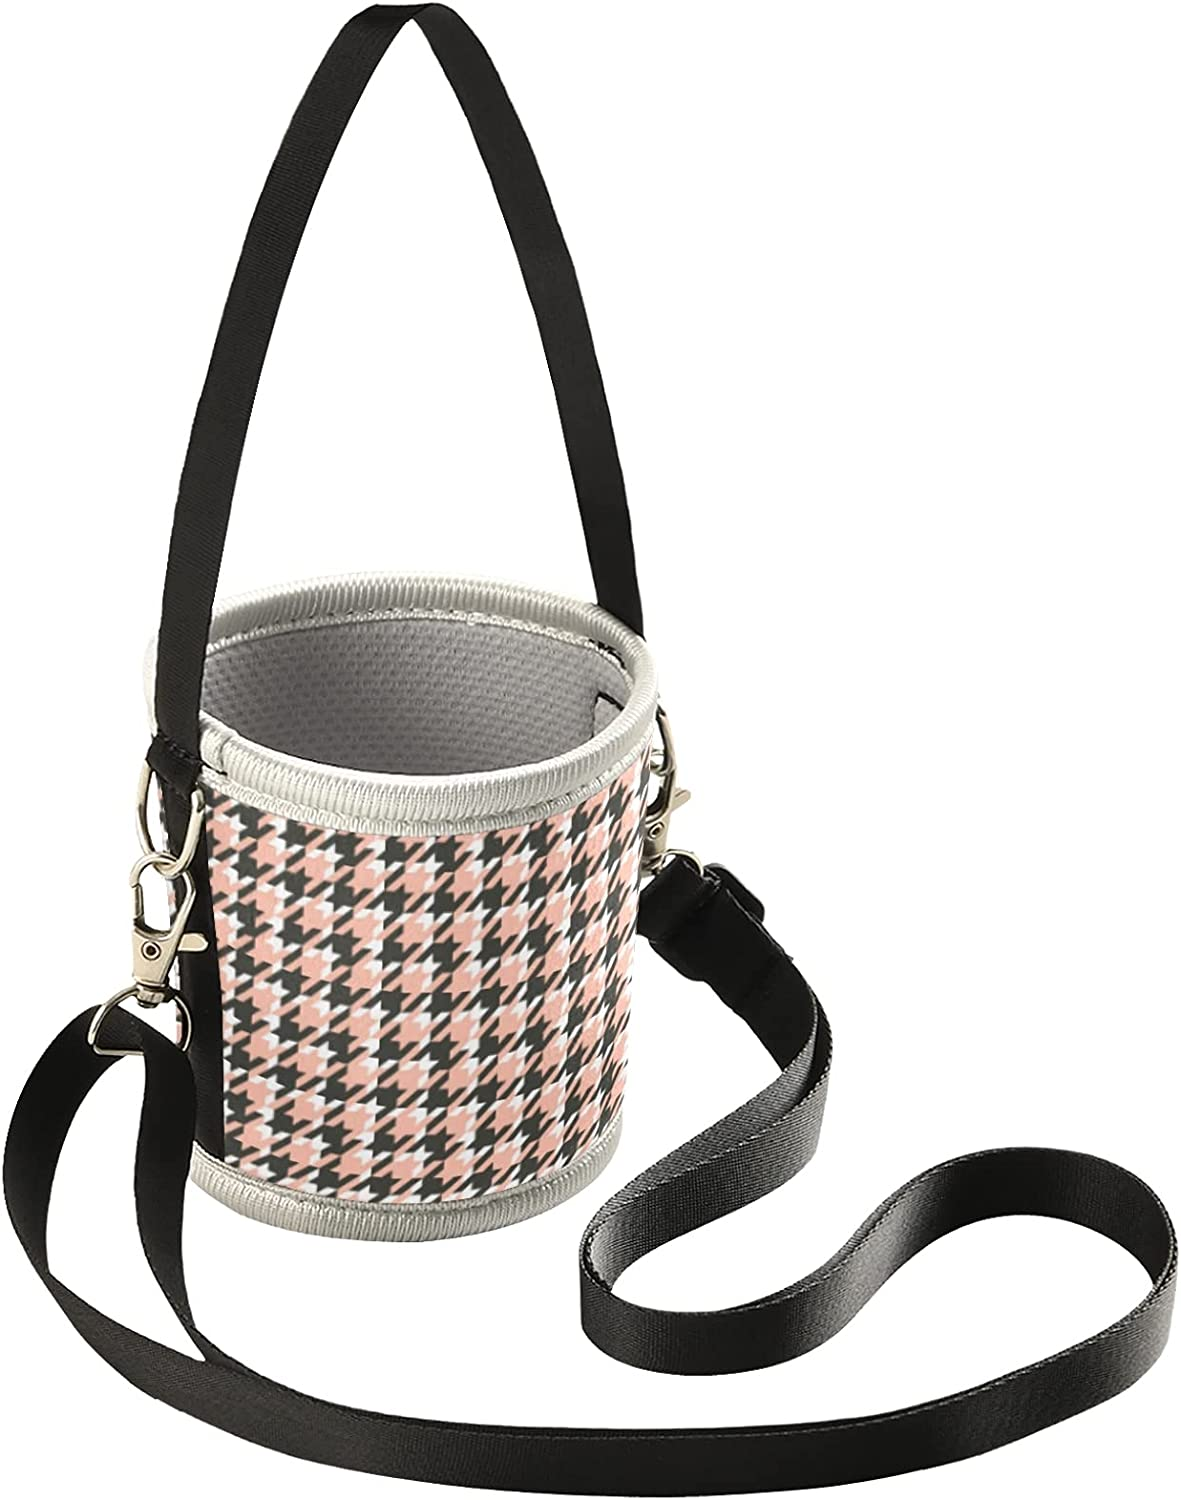 Iced Coffee Sleeve for Hot Cold Coffee Cup Houndstooth Reusable